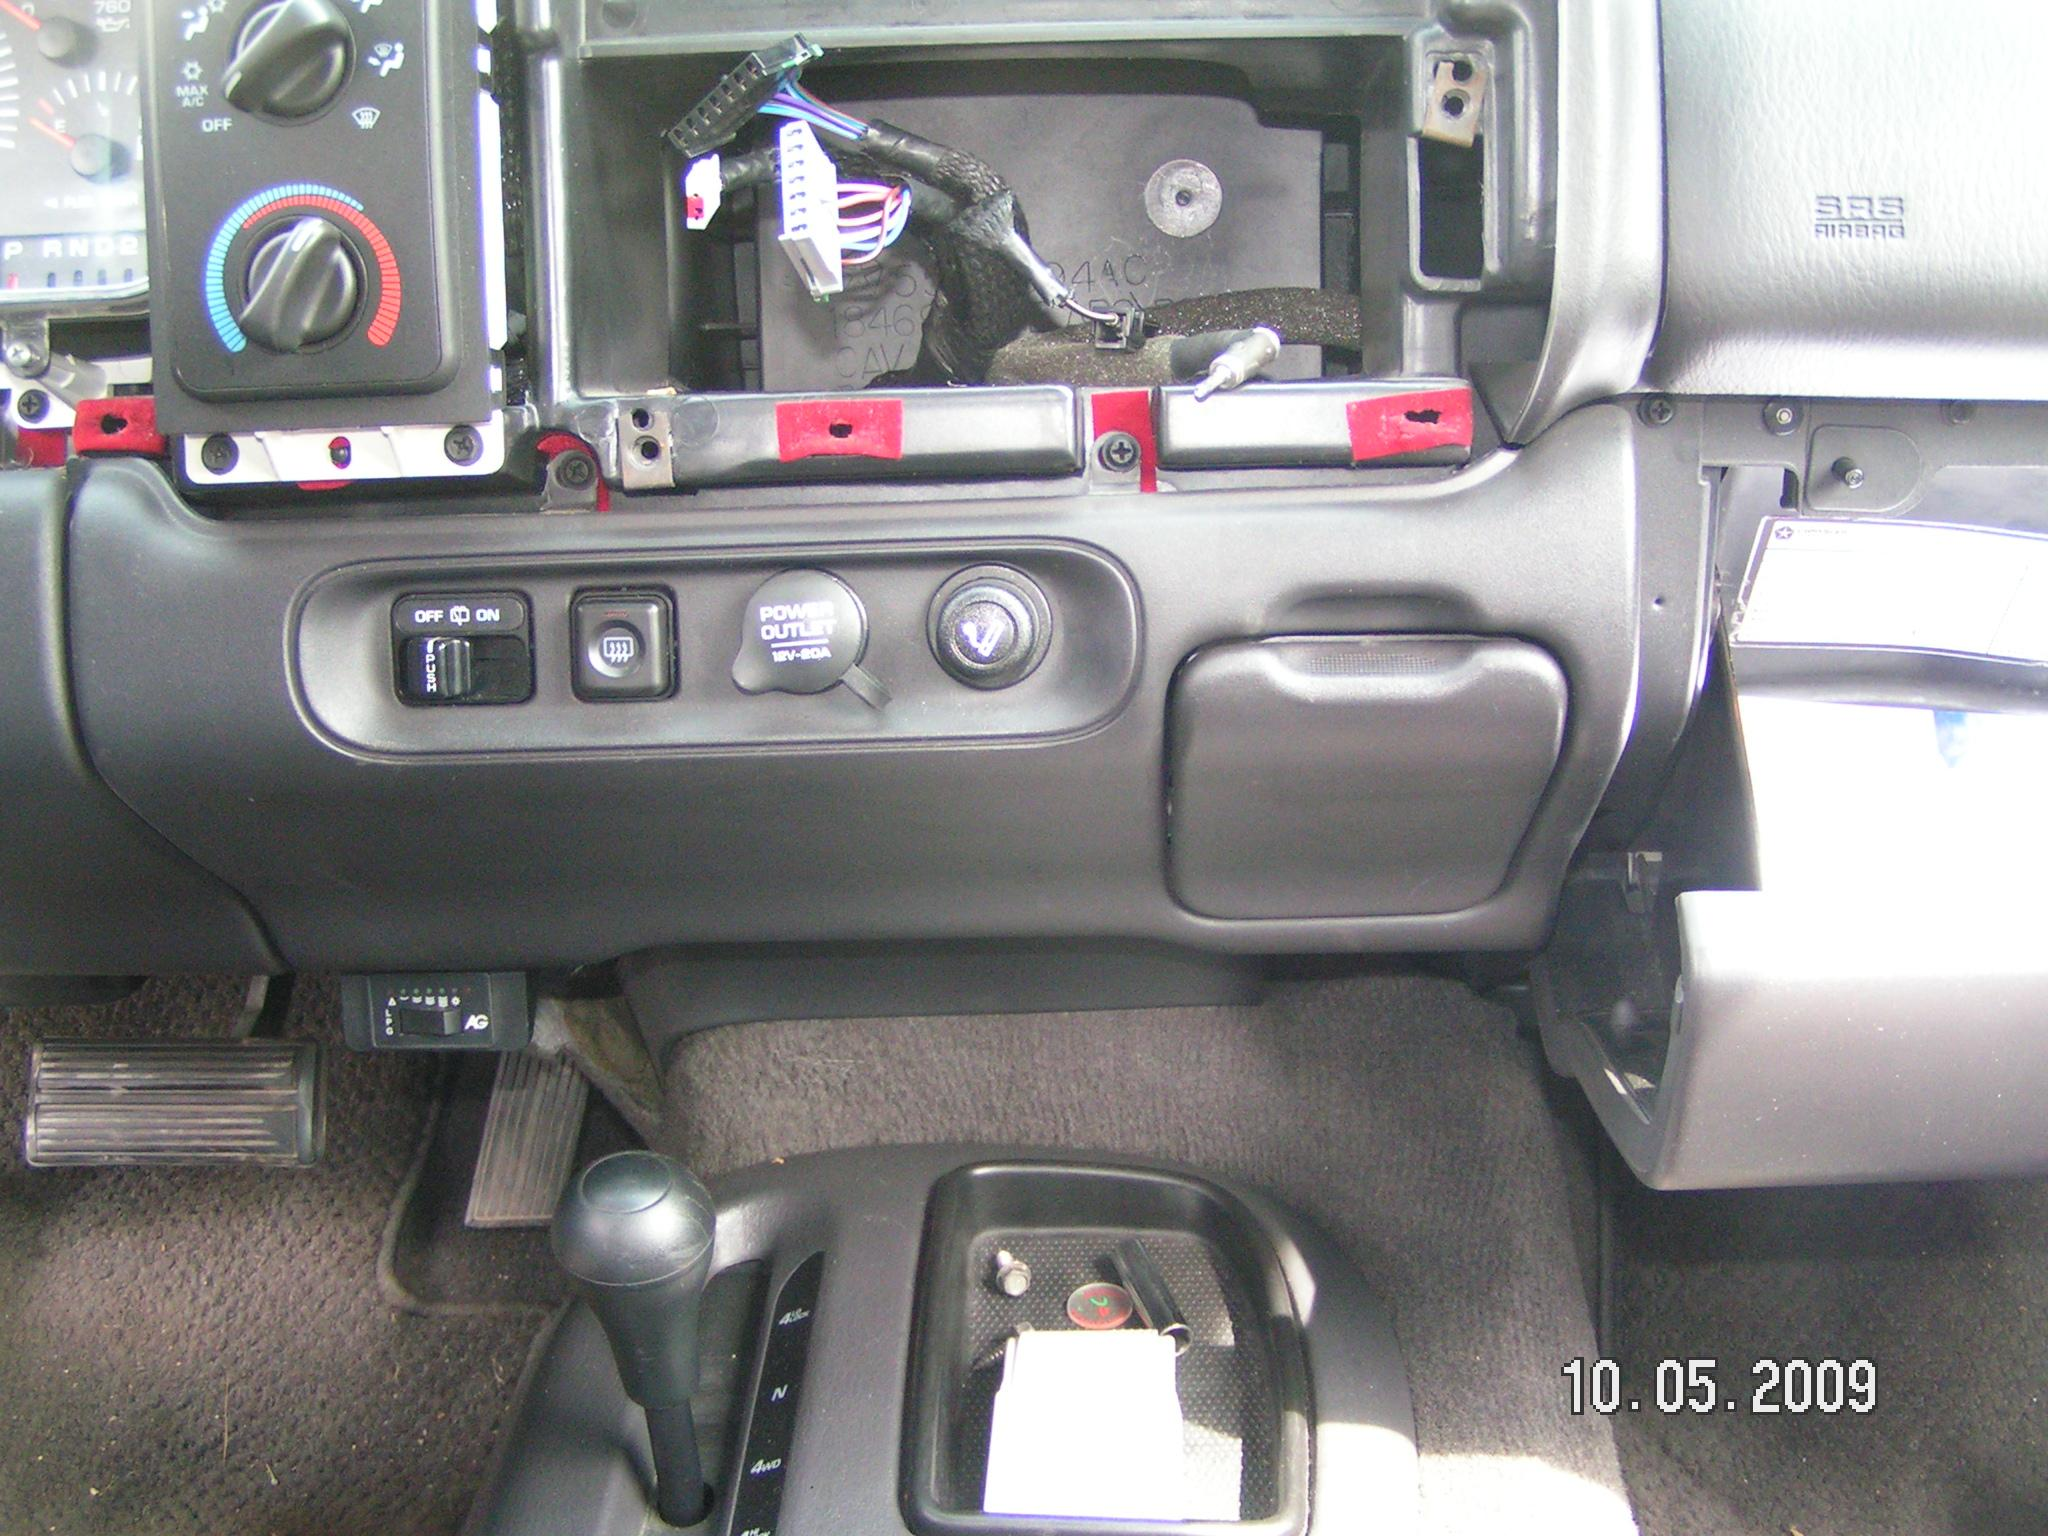 2006 Dodge Durango Wiring Harness 33 Diagram Images 99 Ram Trailer Radio Replacement Radio12 At